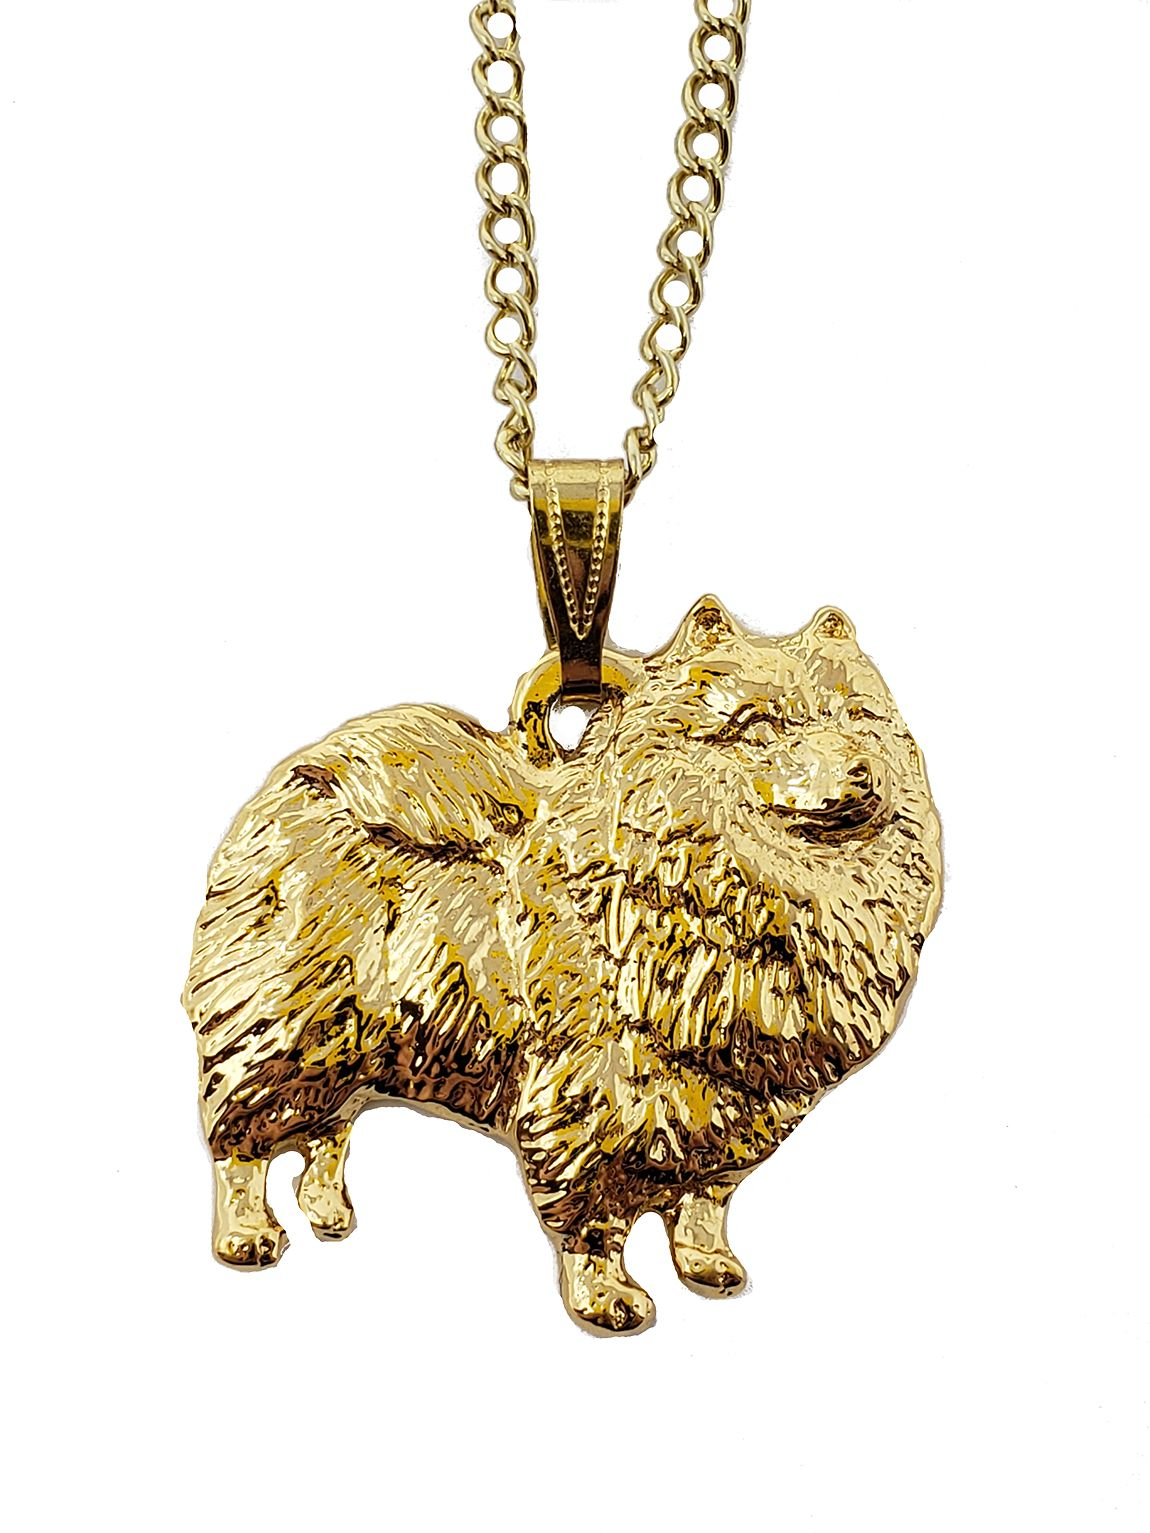 Keeshond 24K Gold Plated Pendant with Necklace